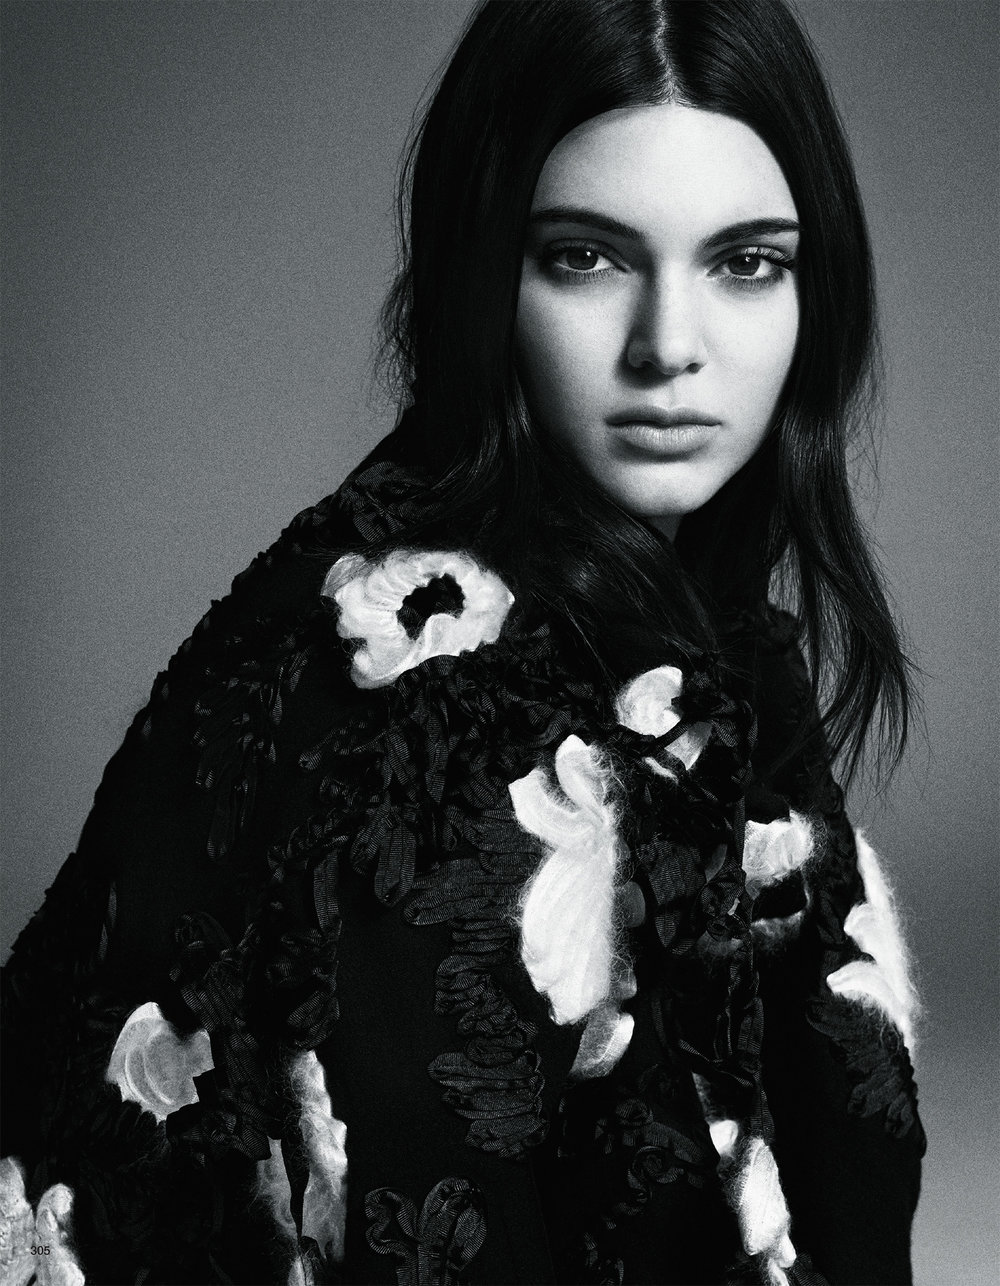 Giovanna-Battaglia-Vogue-Japan-November-2015-Cool-As-Kendall-Patrick-Demarchelier-Kendall-Jenner-2.jpg